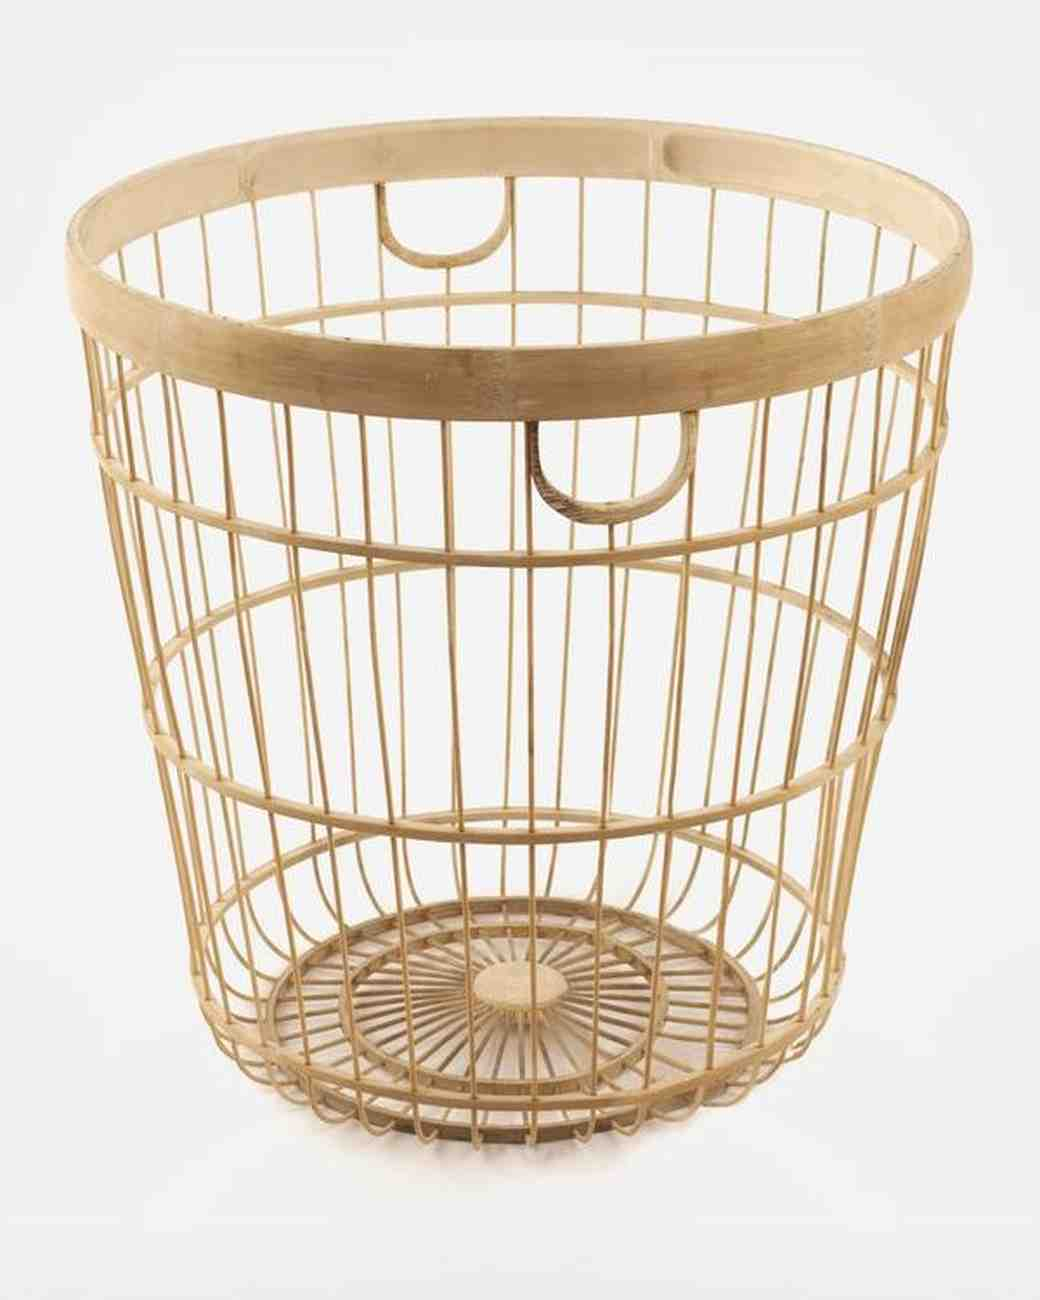 Baskets for Apartment-Friendly Registry